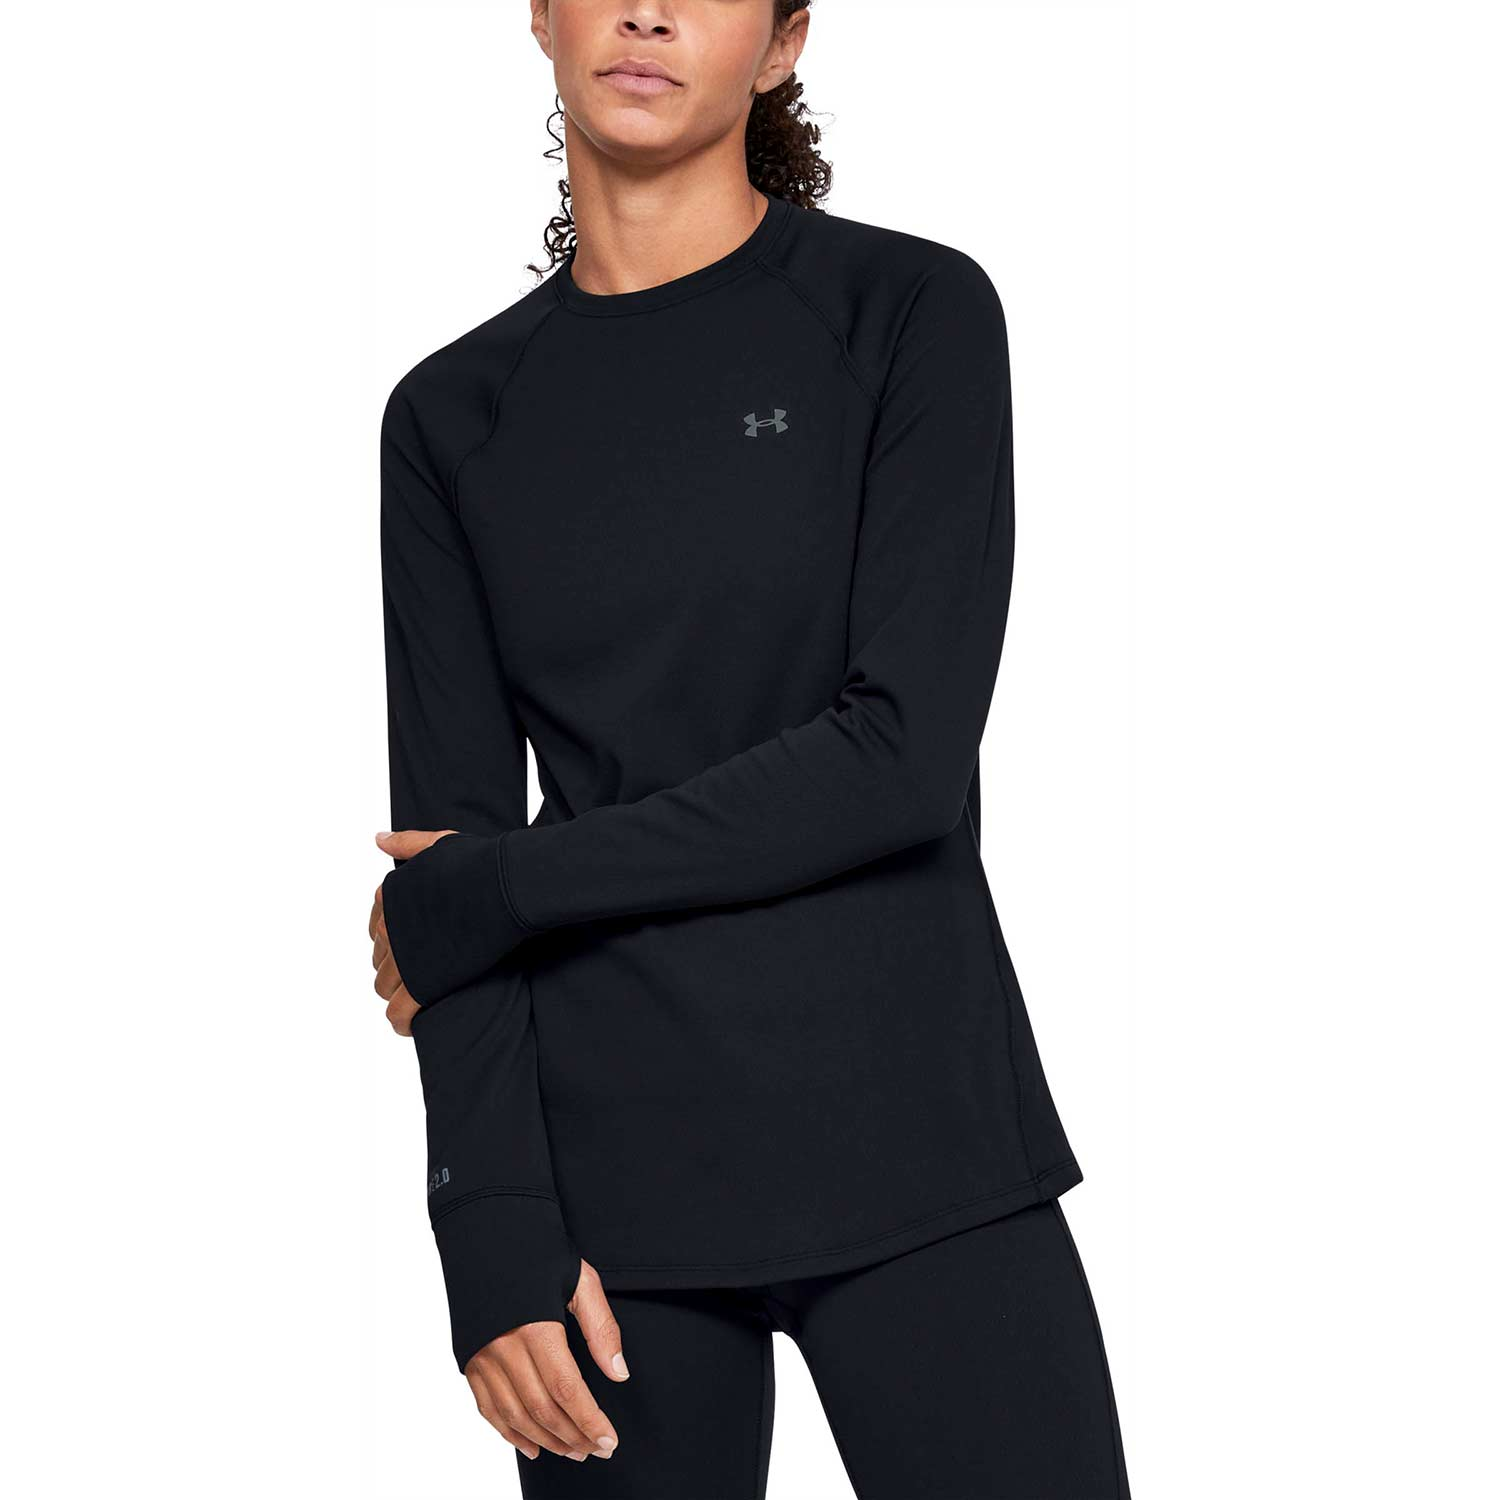 Under Armour Women's ColdGear Base 2.0 Crew